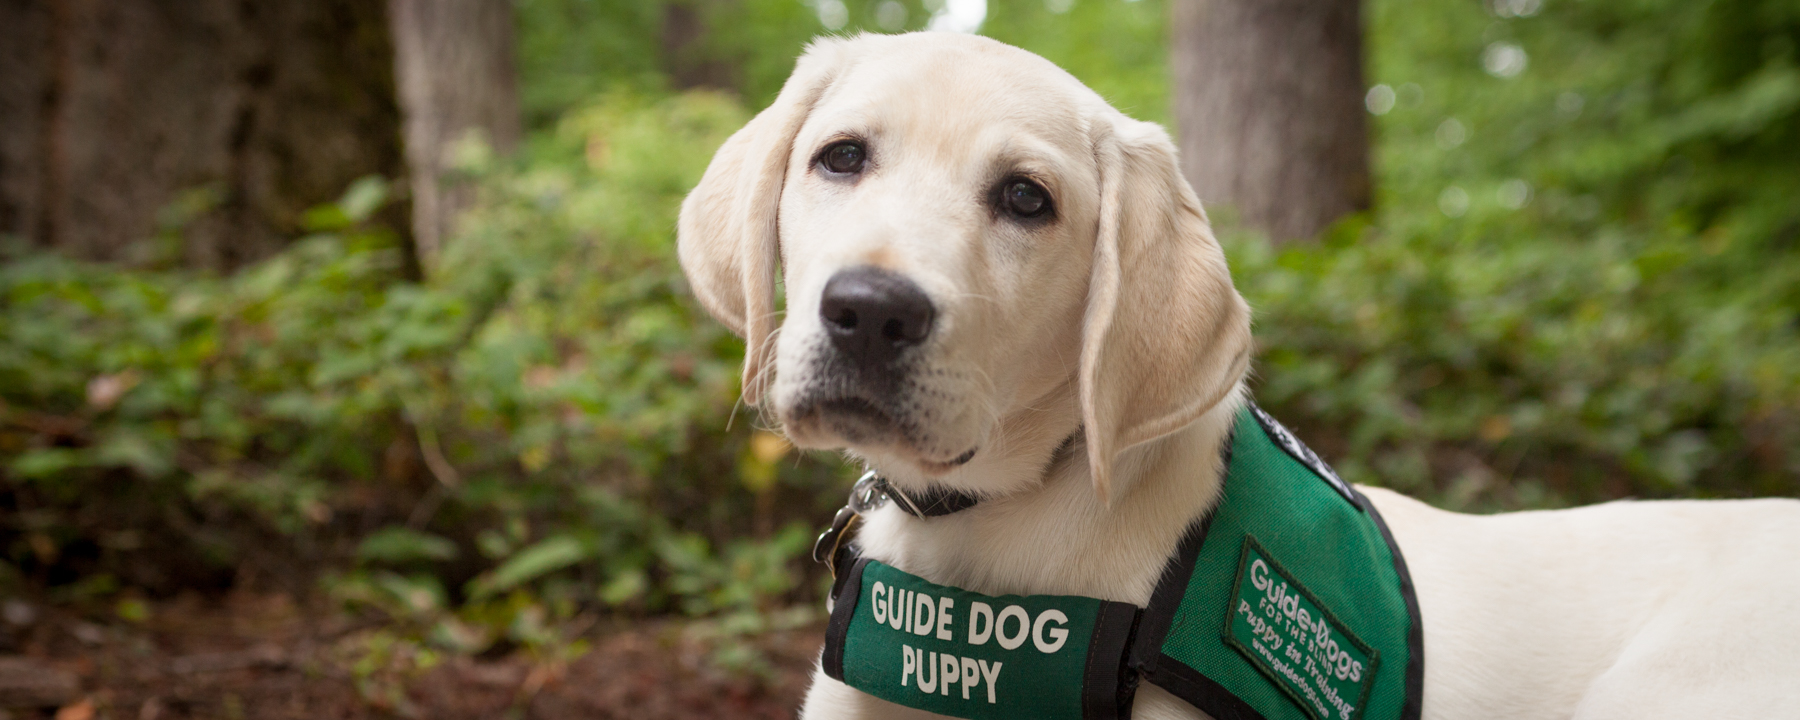 A yellow Lab wearing a GDB puppy coat looking at the camera. The pup is lying on a path with lush green trees in the background.